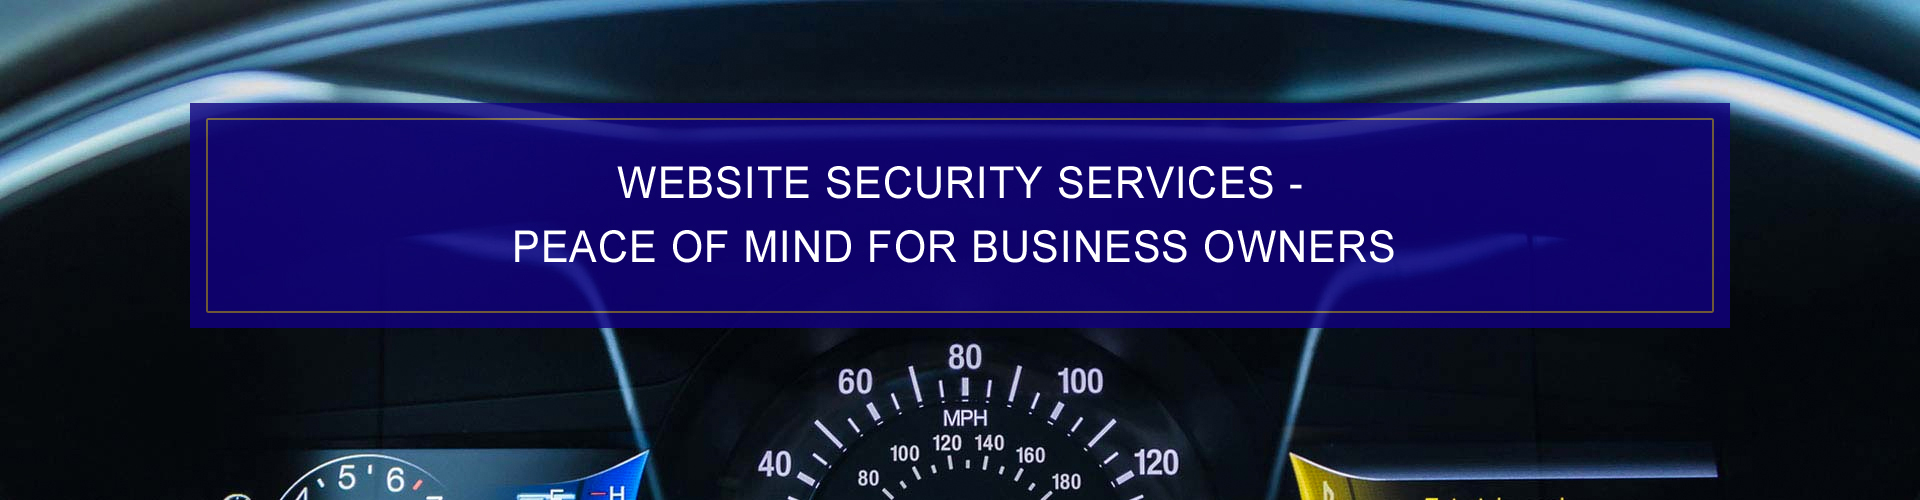 Dashboard Interactive - Website Security Services Peace Of Mind Business Owners